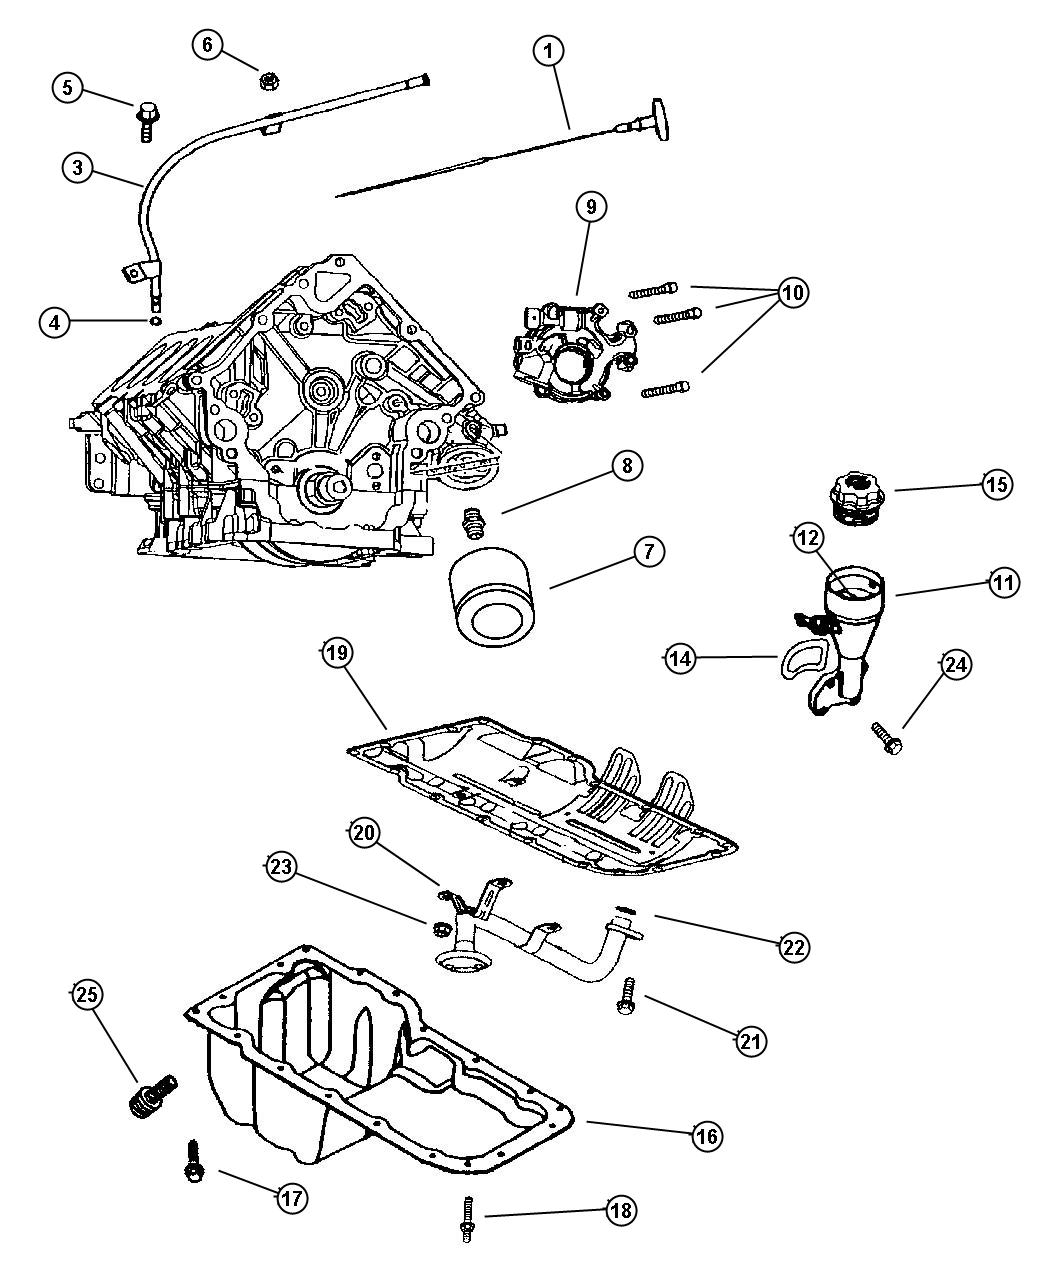 2006 dodge durango hemi belt diagram